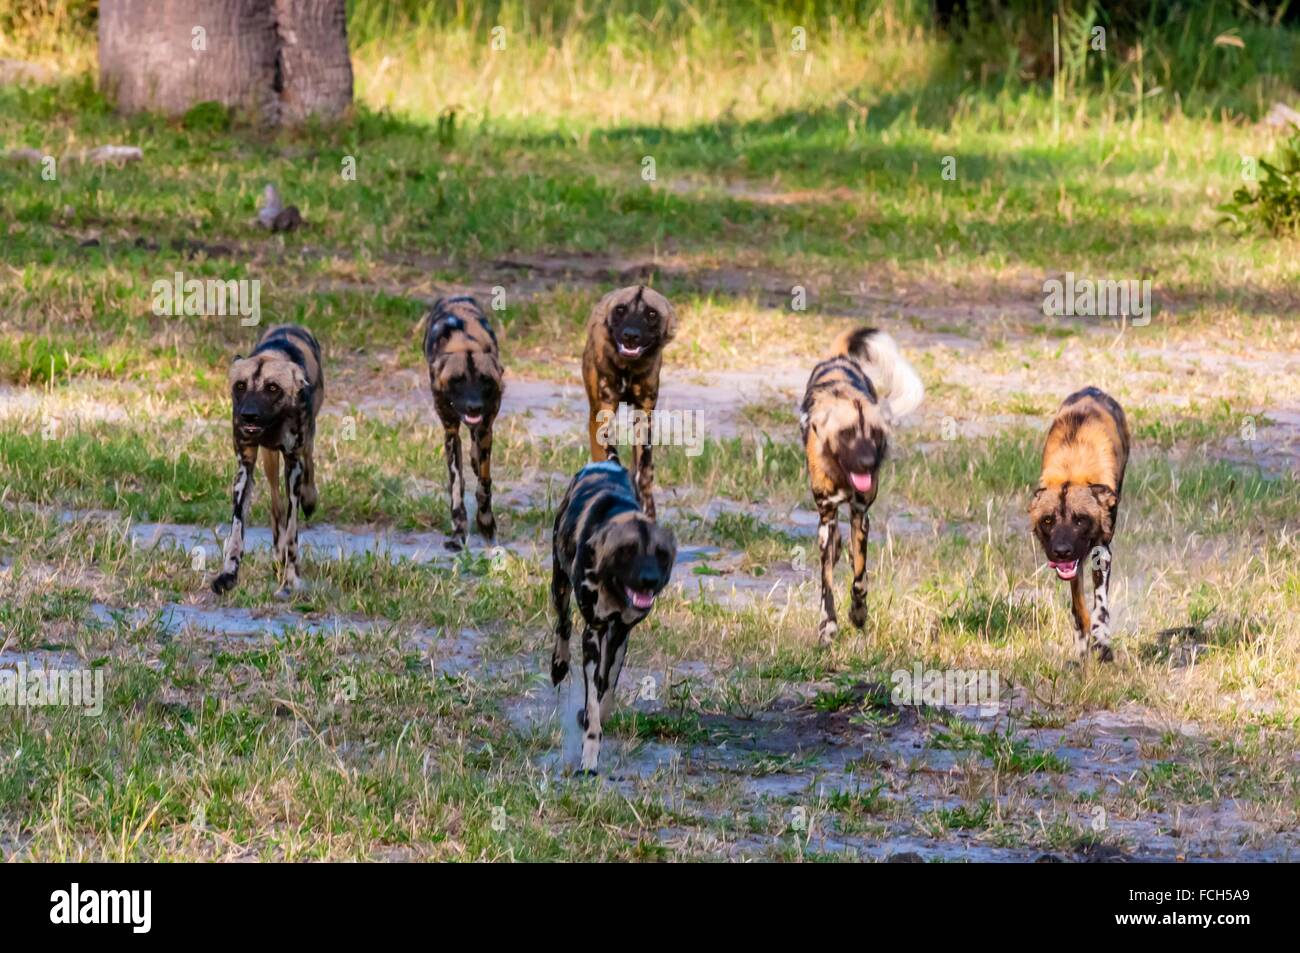 African wild dogs, near Kwando Concession, Linyanti Marshes, Botswana. African wild dogs are extremely endangered. Stock Photo